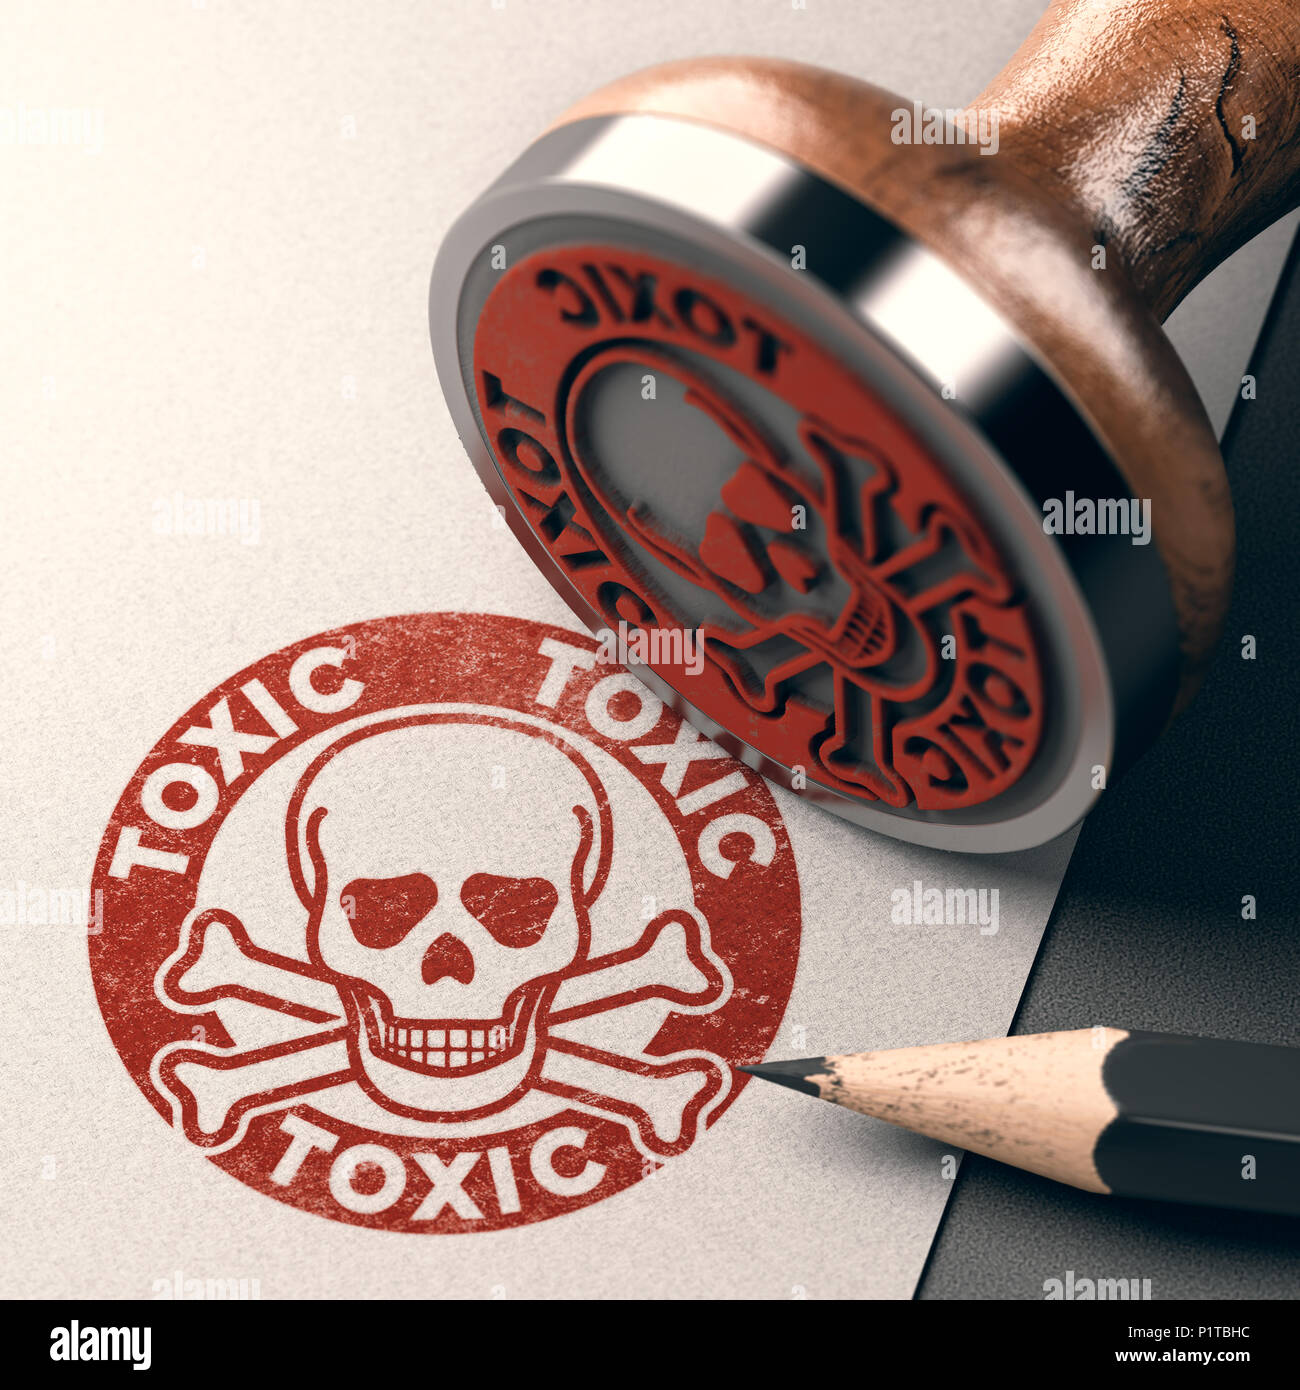 3D illustration of a rubber stamp with skull, bones and the text toxic stamped on paper background - Stock Image